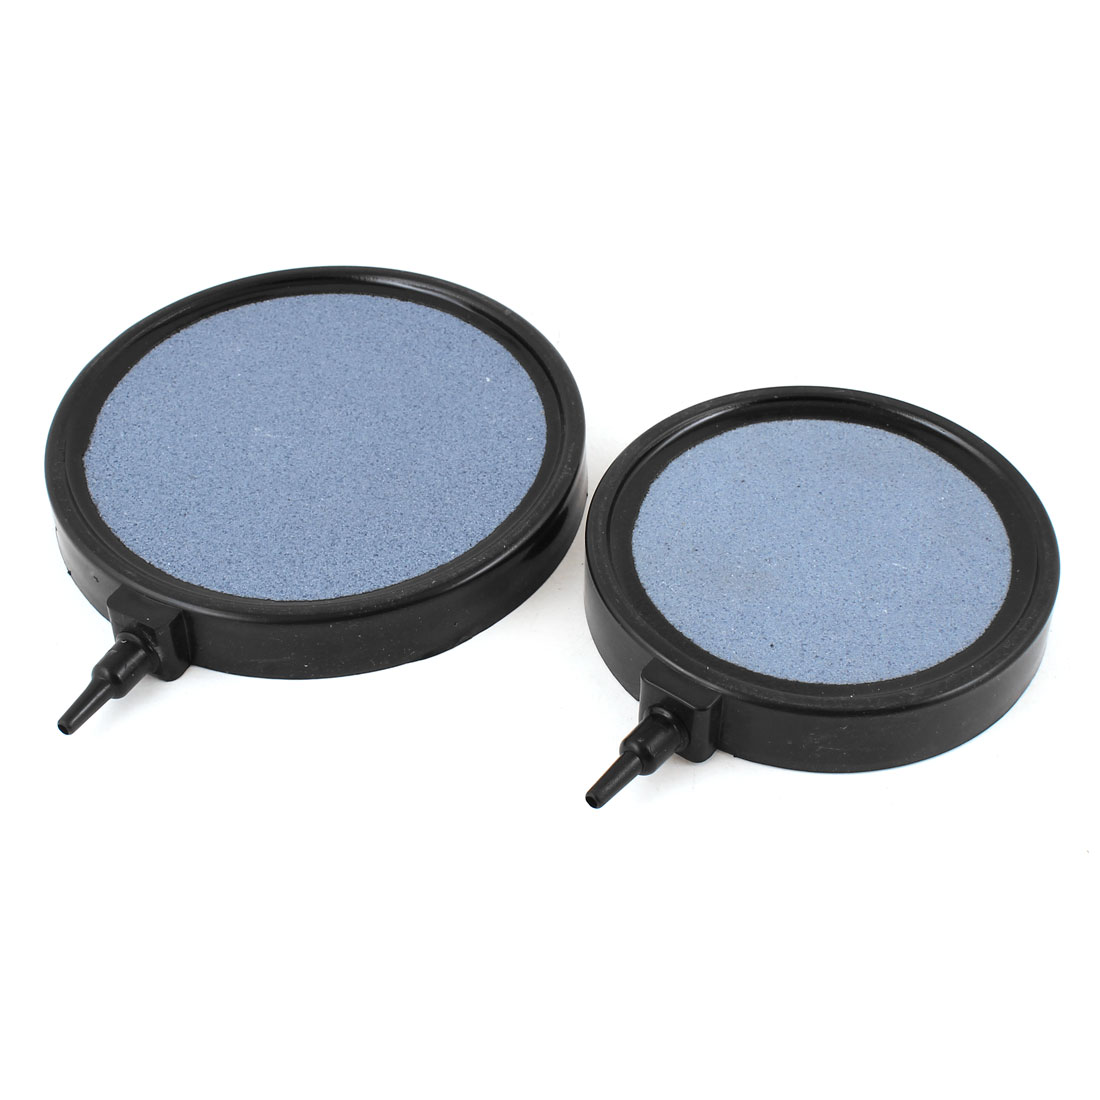 2PCS Black Plastic Housing Round Bubble Air Stone for Fish Tank